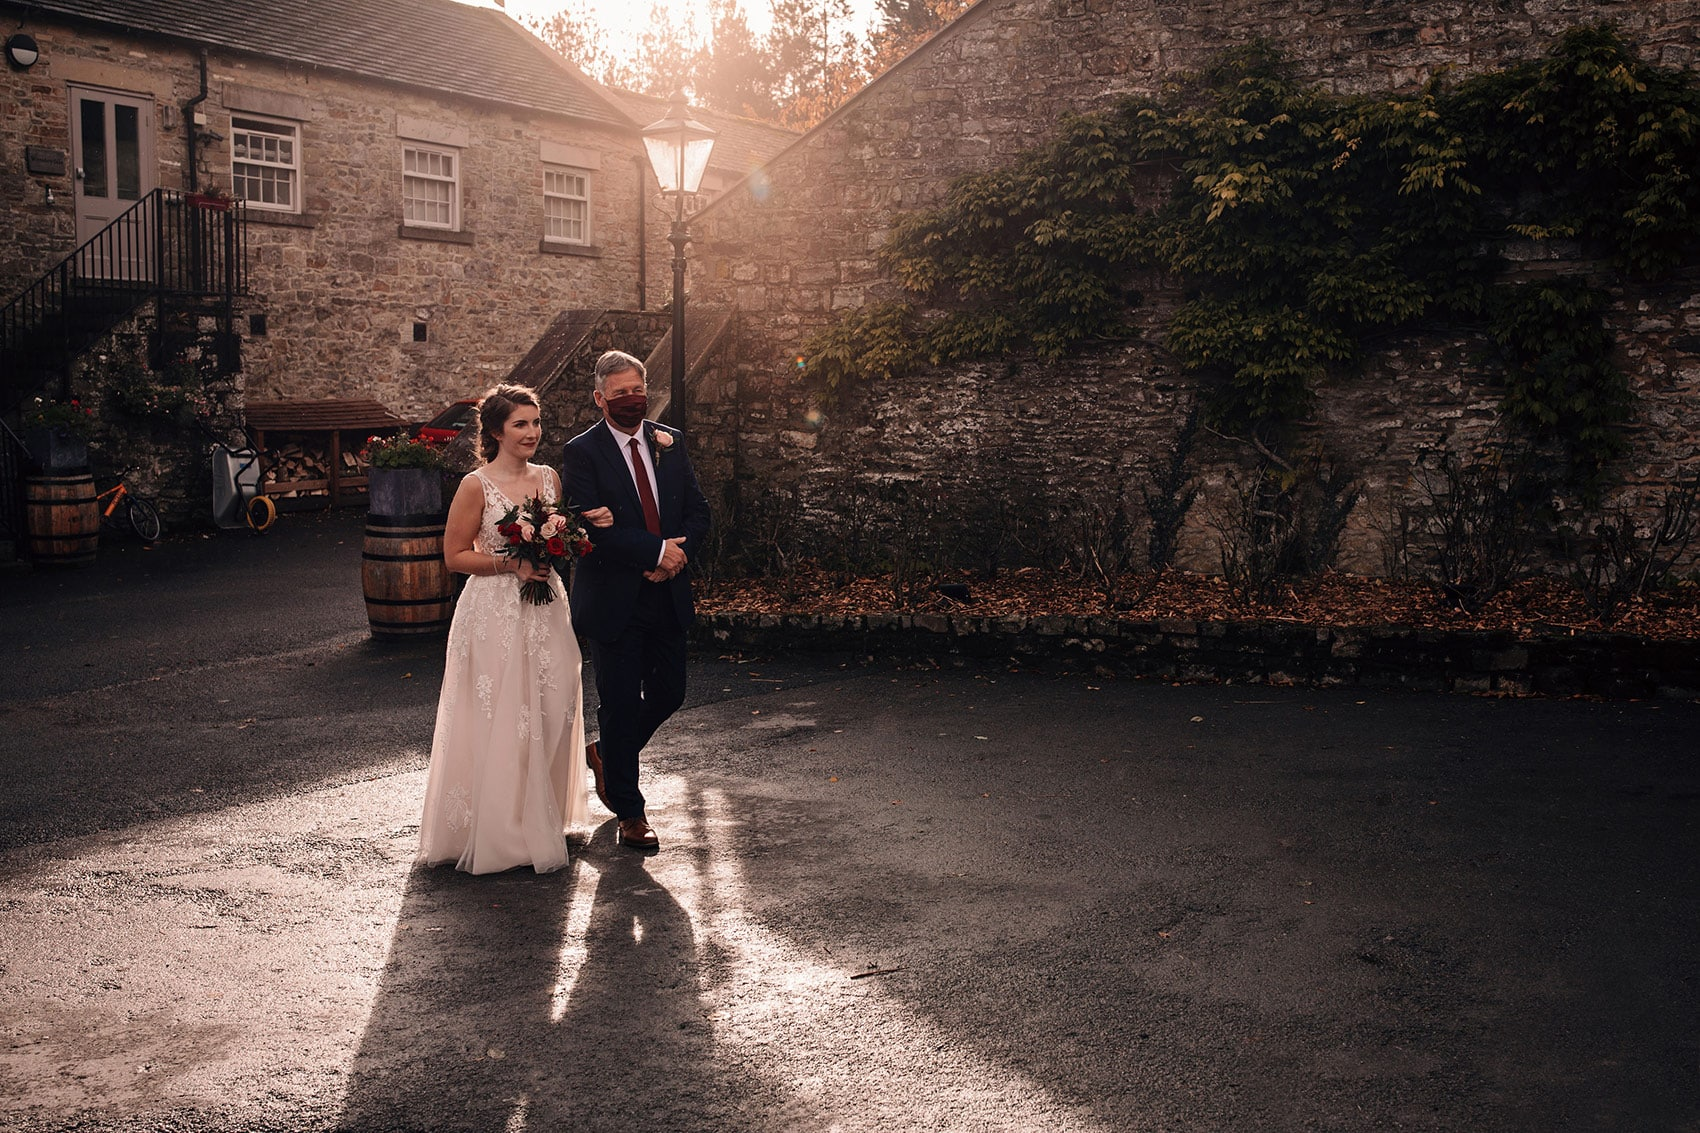 Yorkshire micro wedding photographer